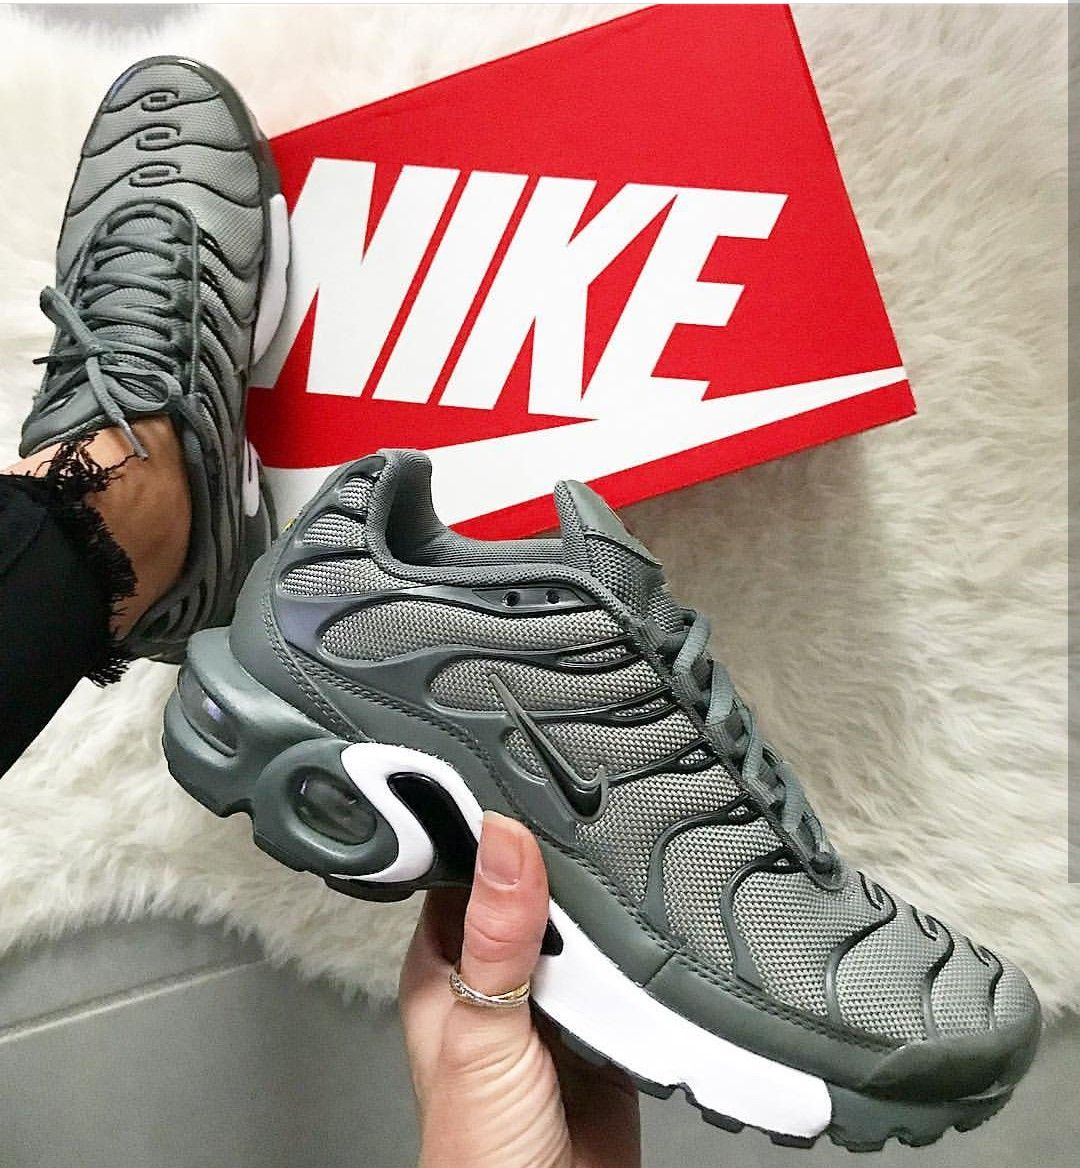 Nike Air Max Plus in olive // Foto: fanamss Instagran clothes